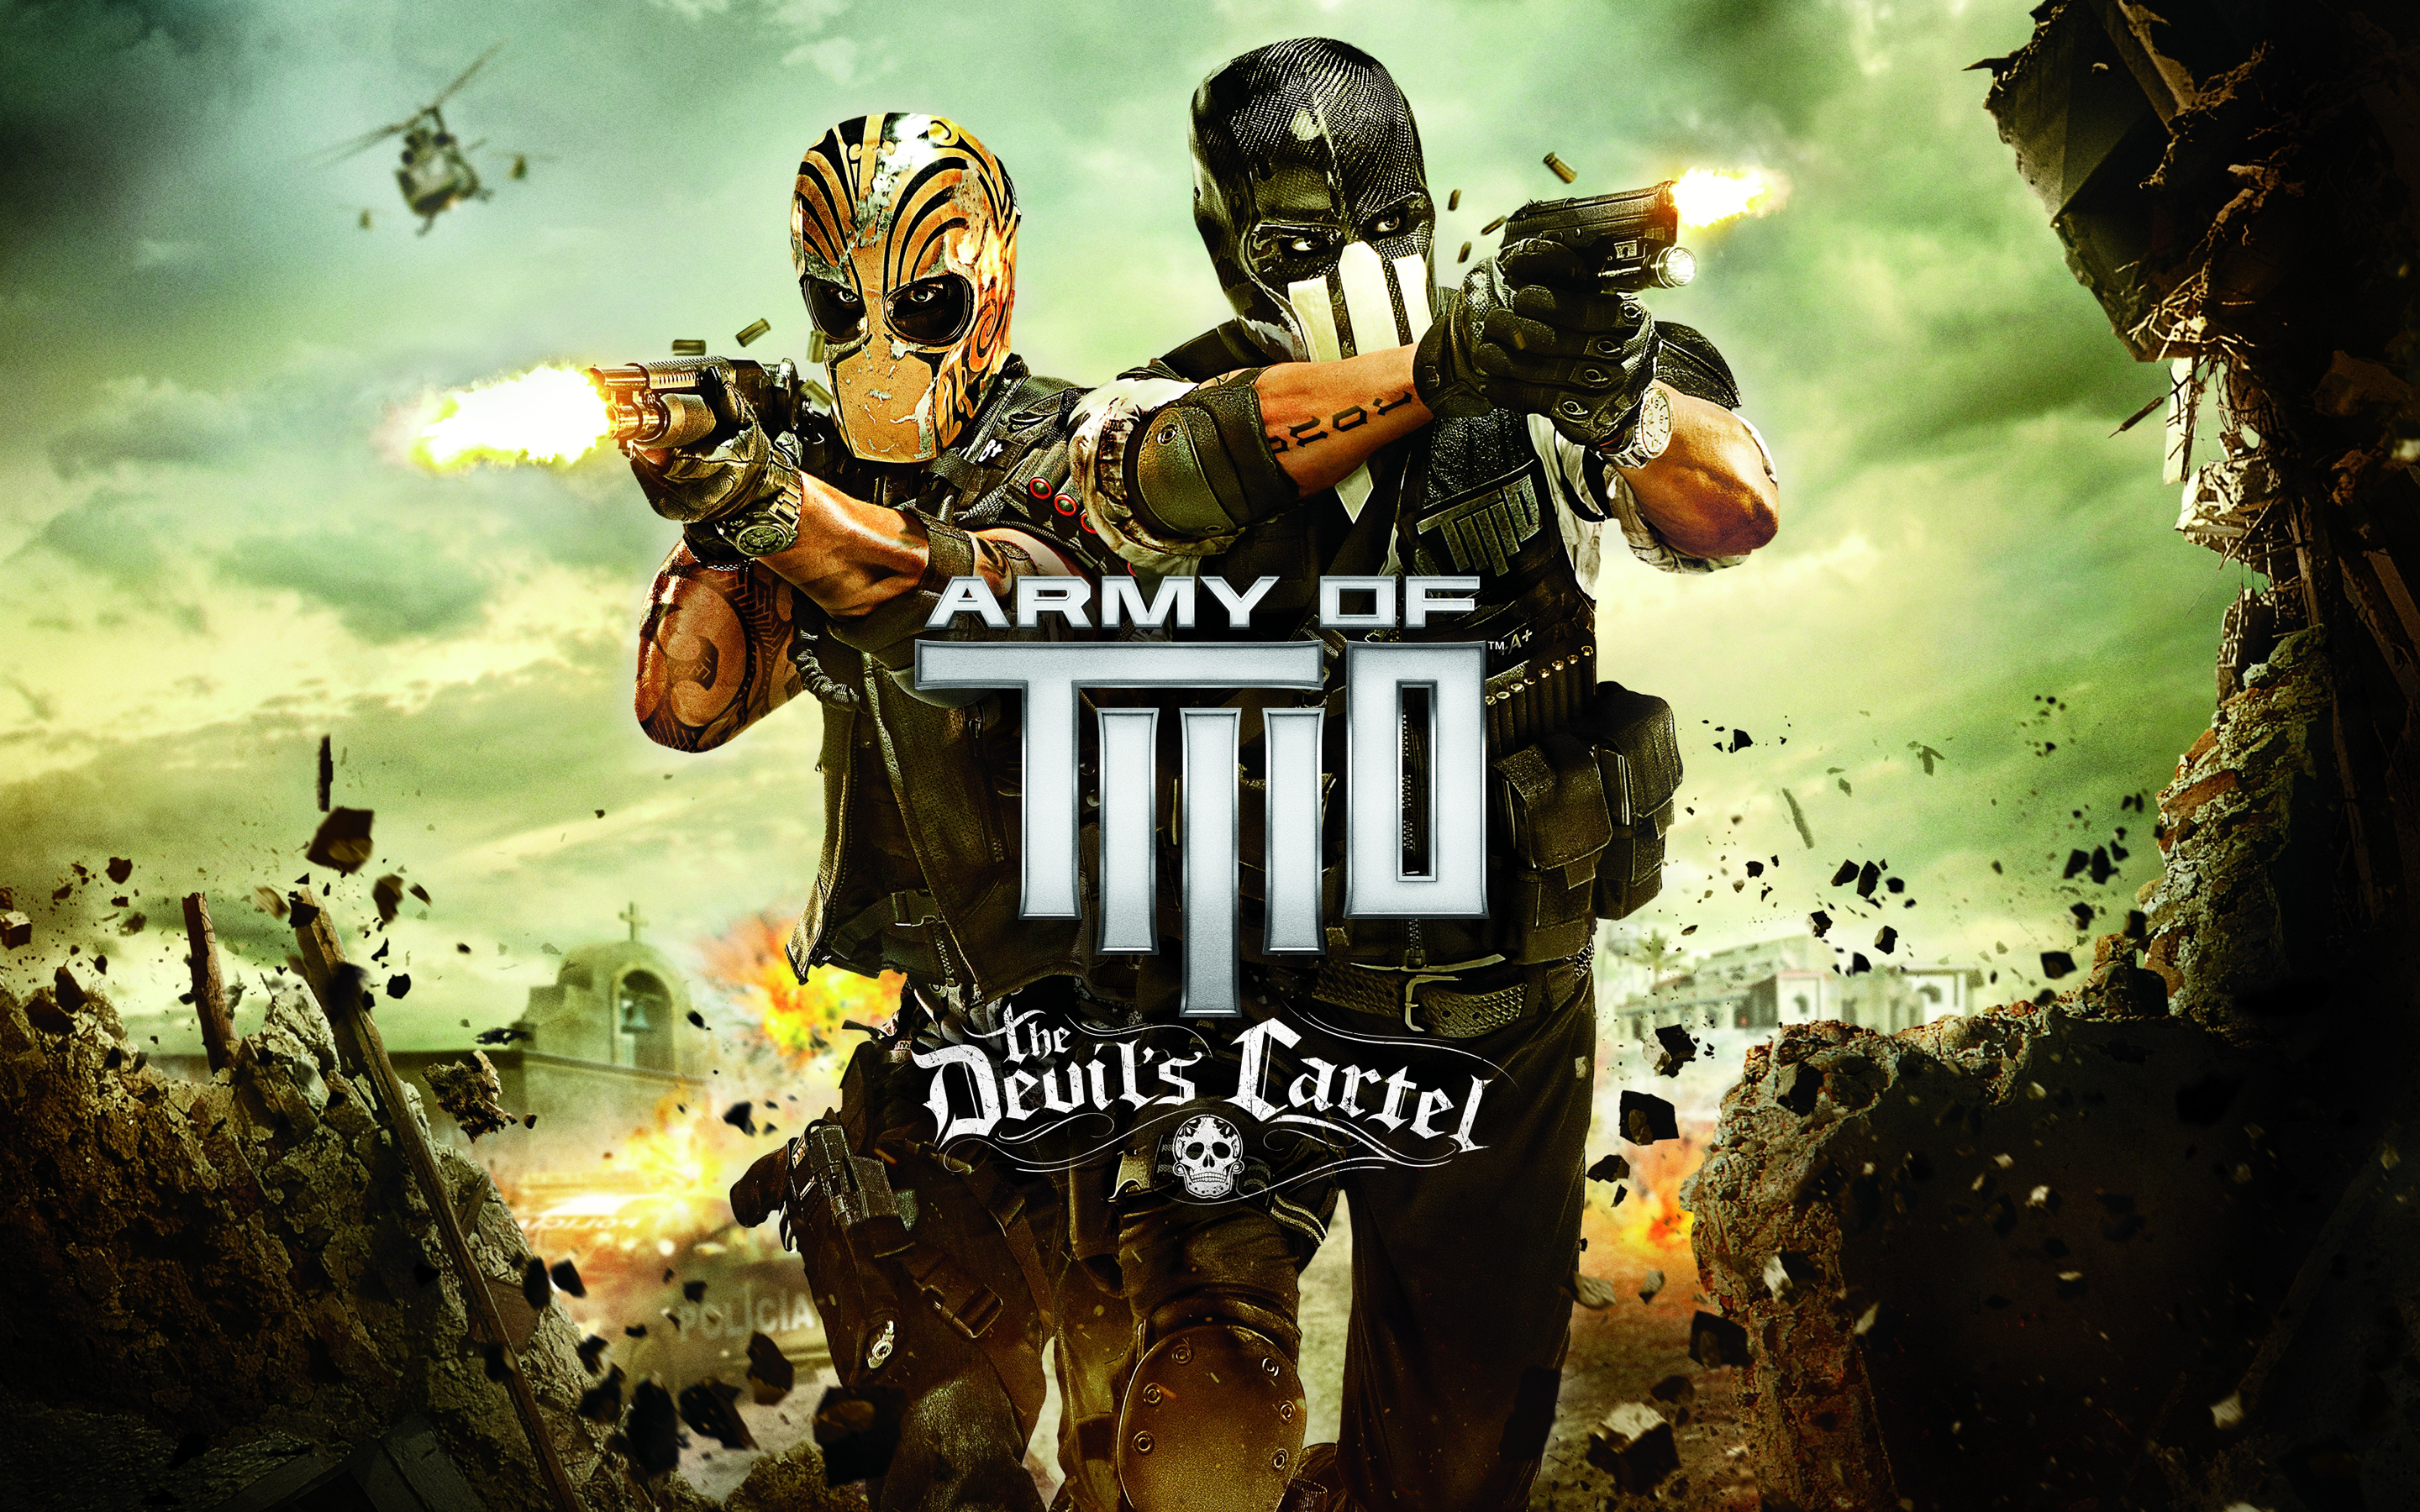 Army of Two The Devils Cartel 2013 wallpaper